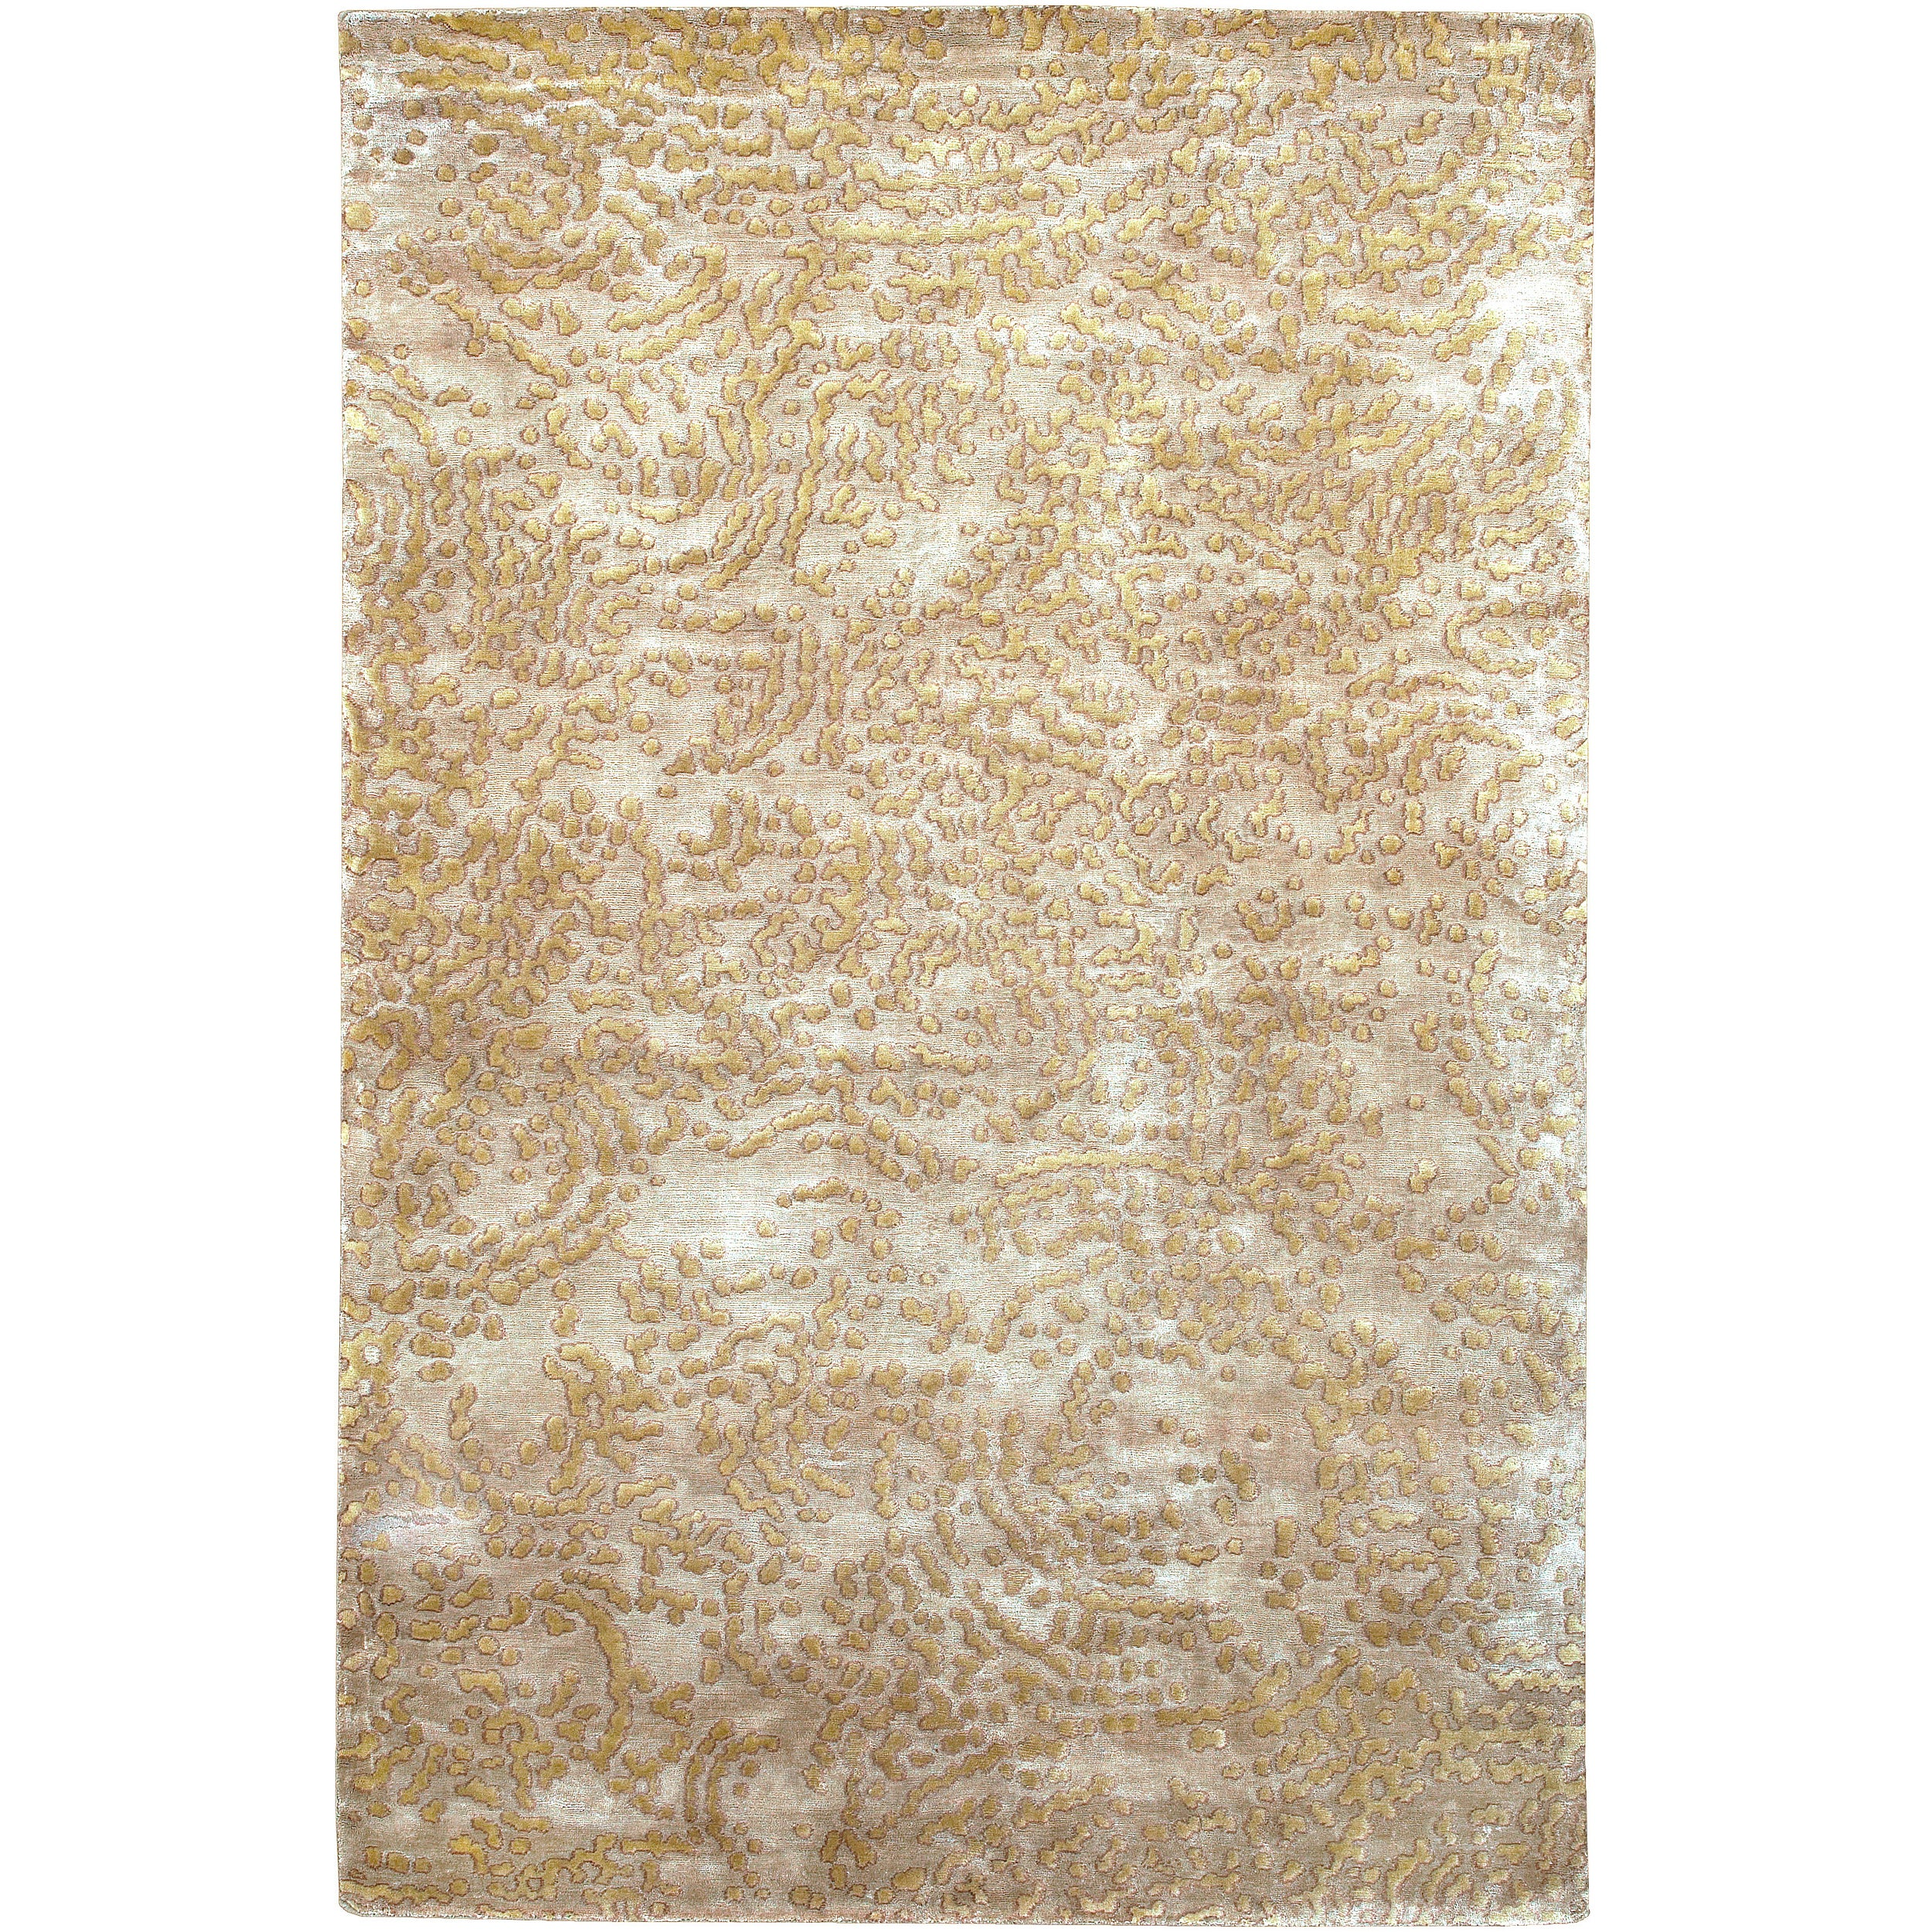 Julie Cohn Hand-knotted Conchoo Tan Abstract Design Wool Rug (4' x 6')